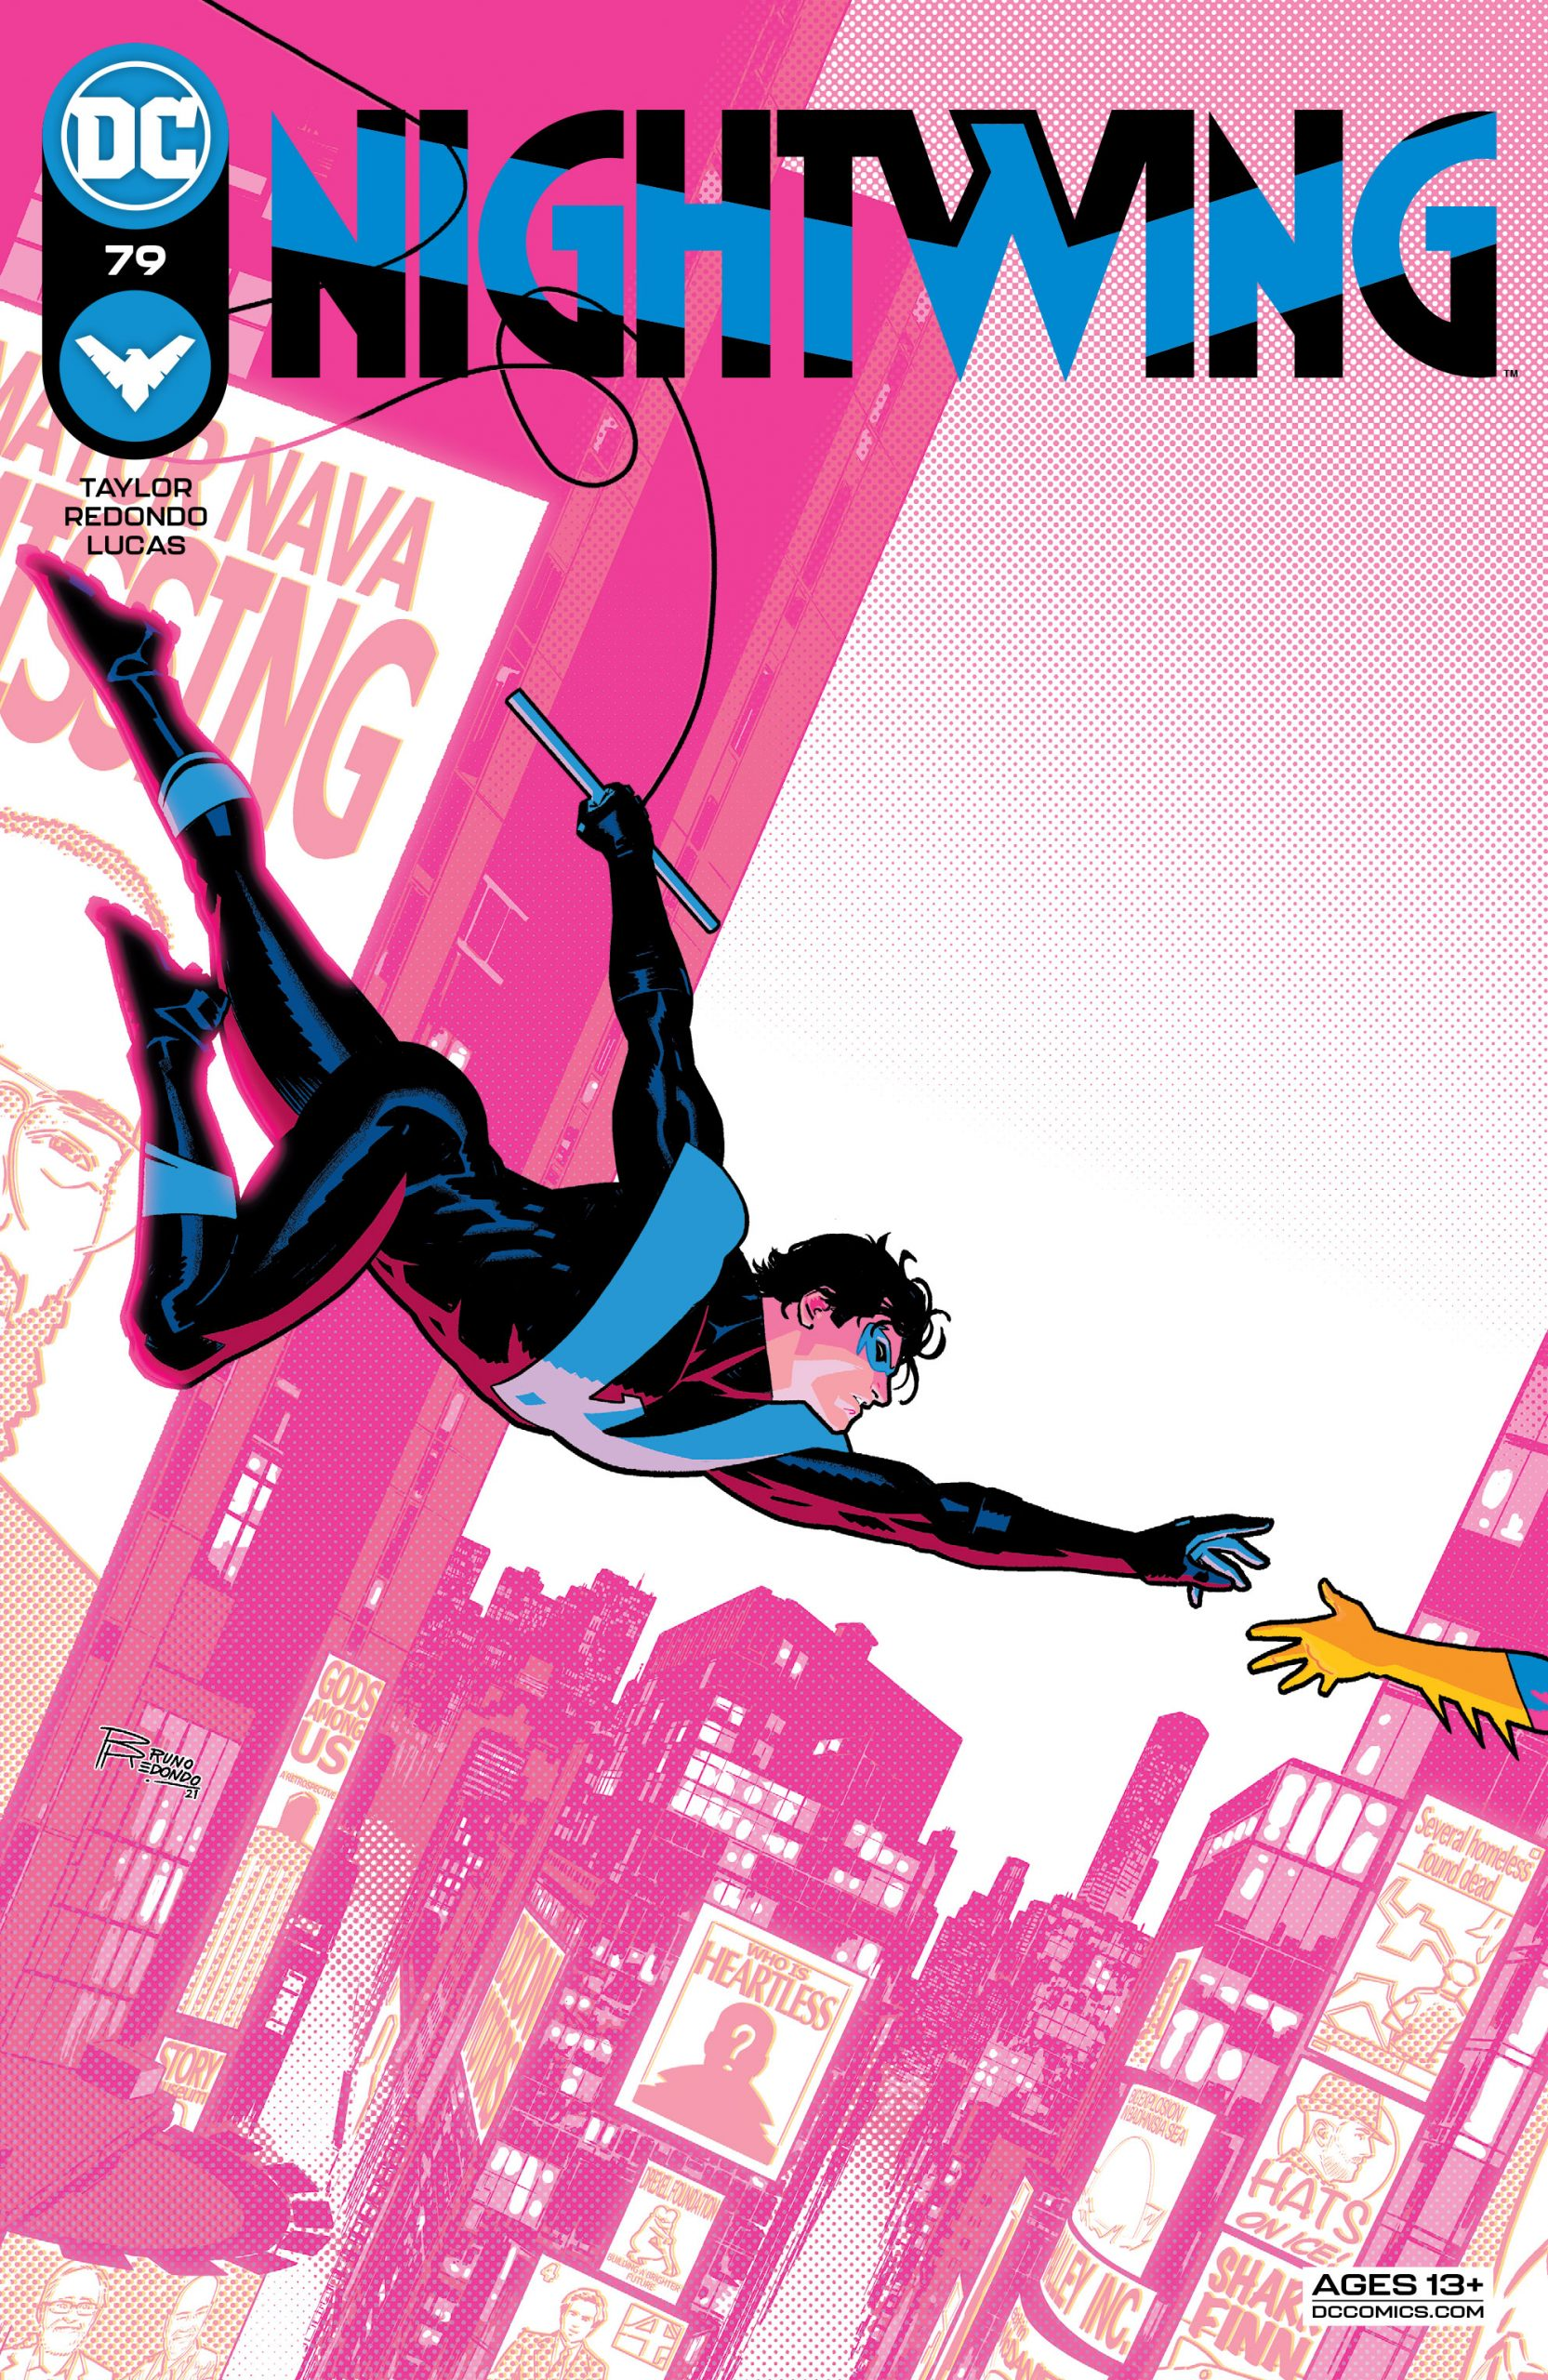 Nightwing-79-1-scaled-1 Nightwing-79-1-scaled-1